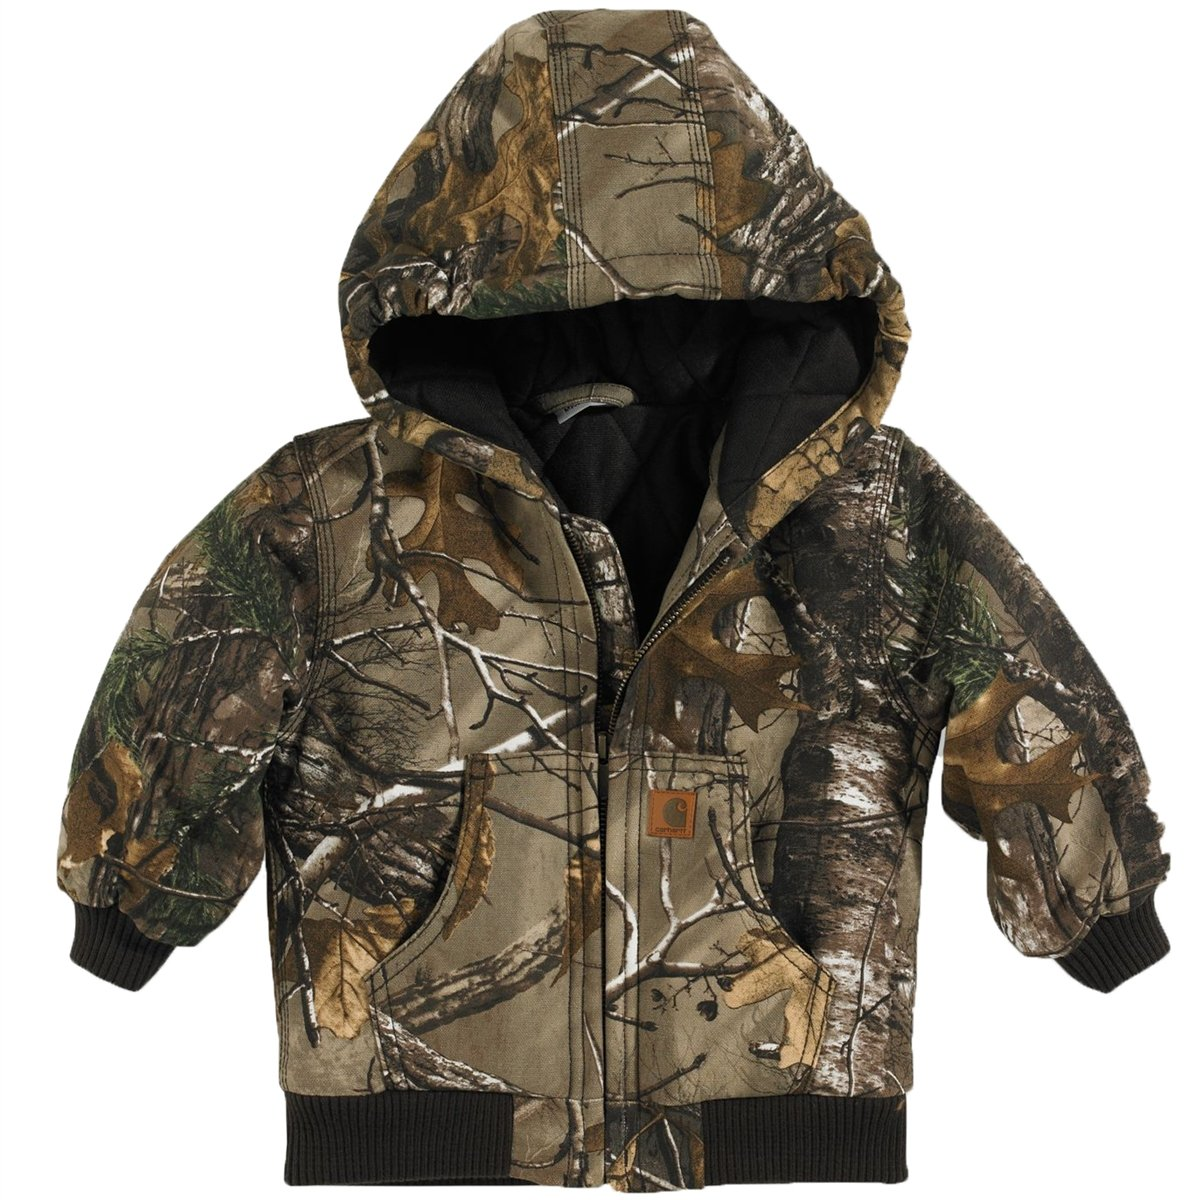 Carhartt Boy's Camo Active Jacket LT Apparel Parent Code CP8467